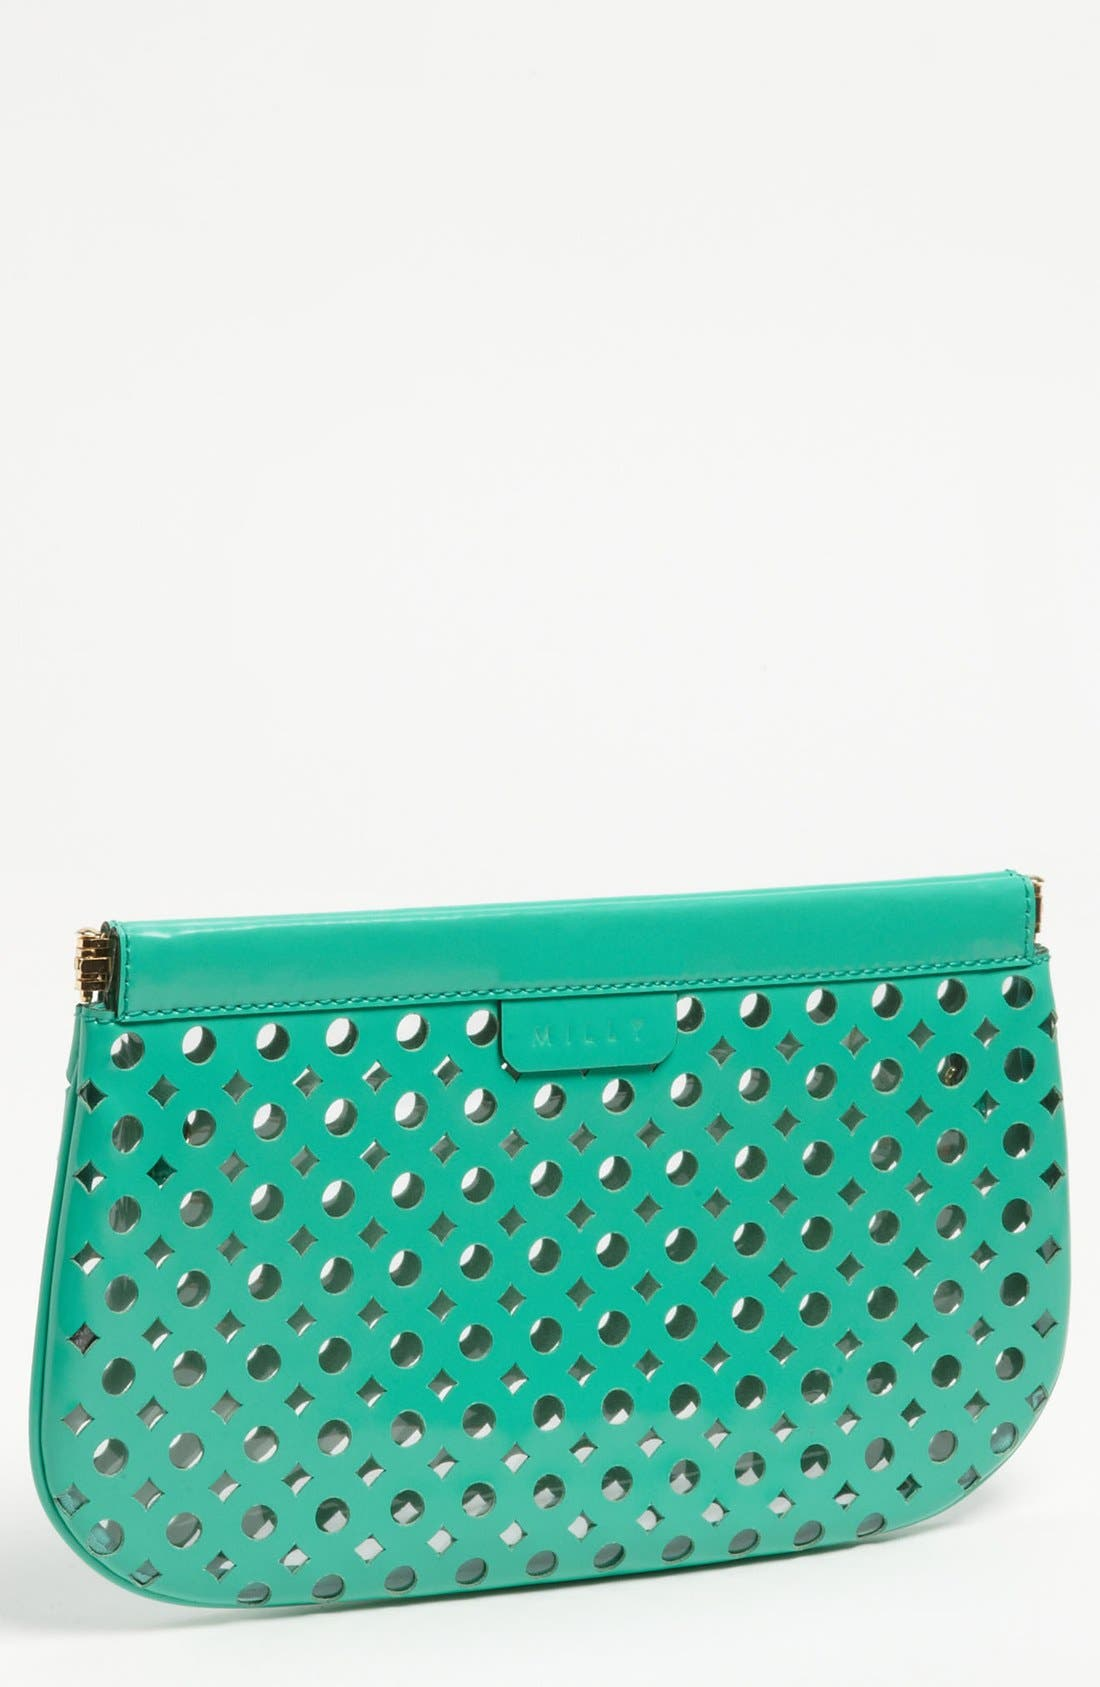 Main Image - Milly 'Addison Facile' Patent Leather Clutch